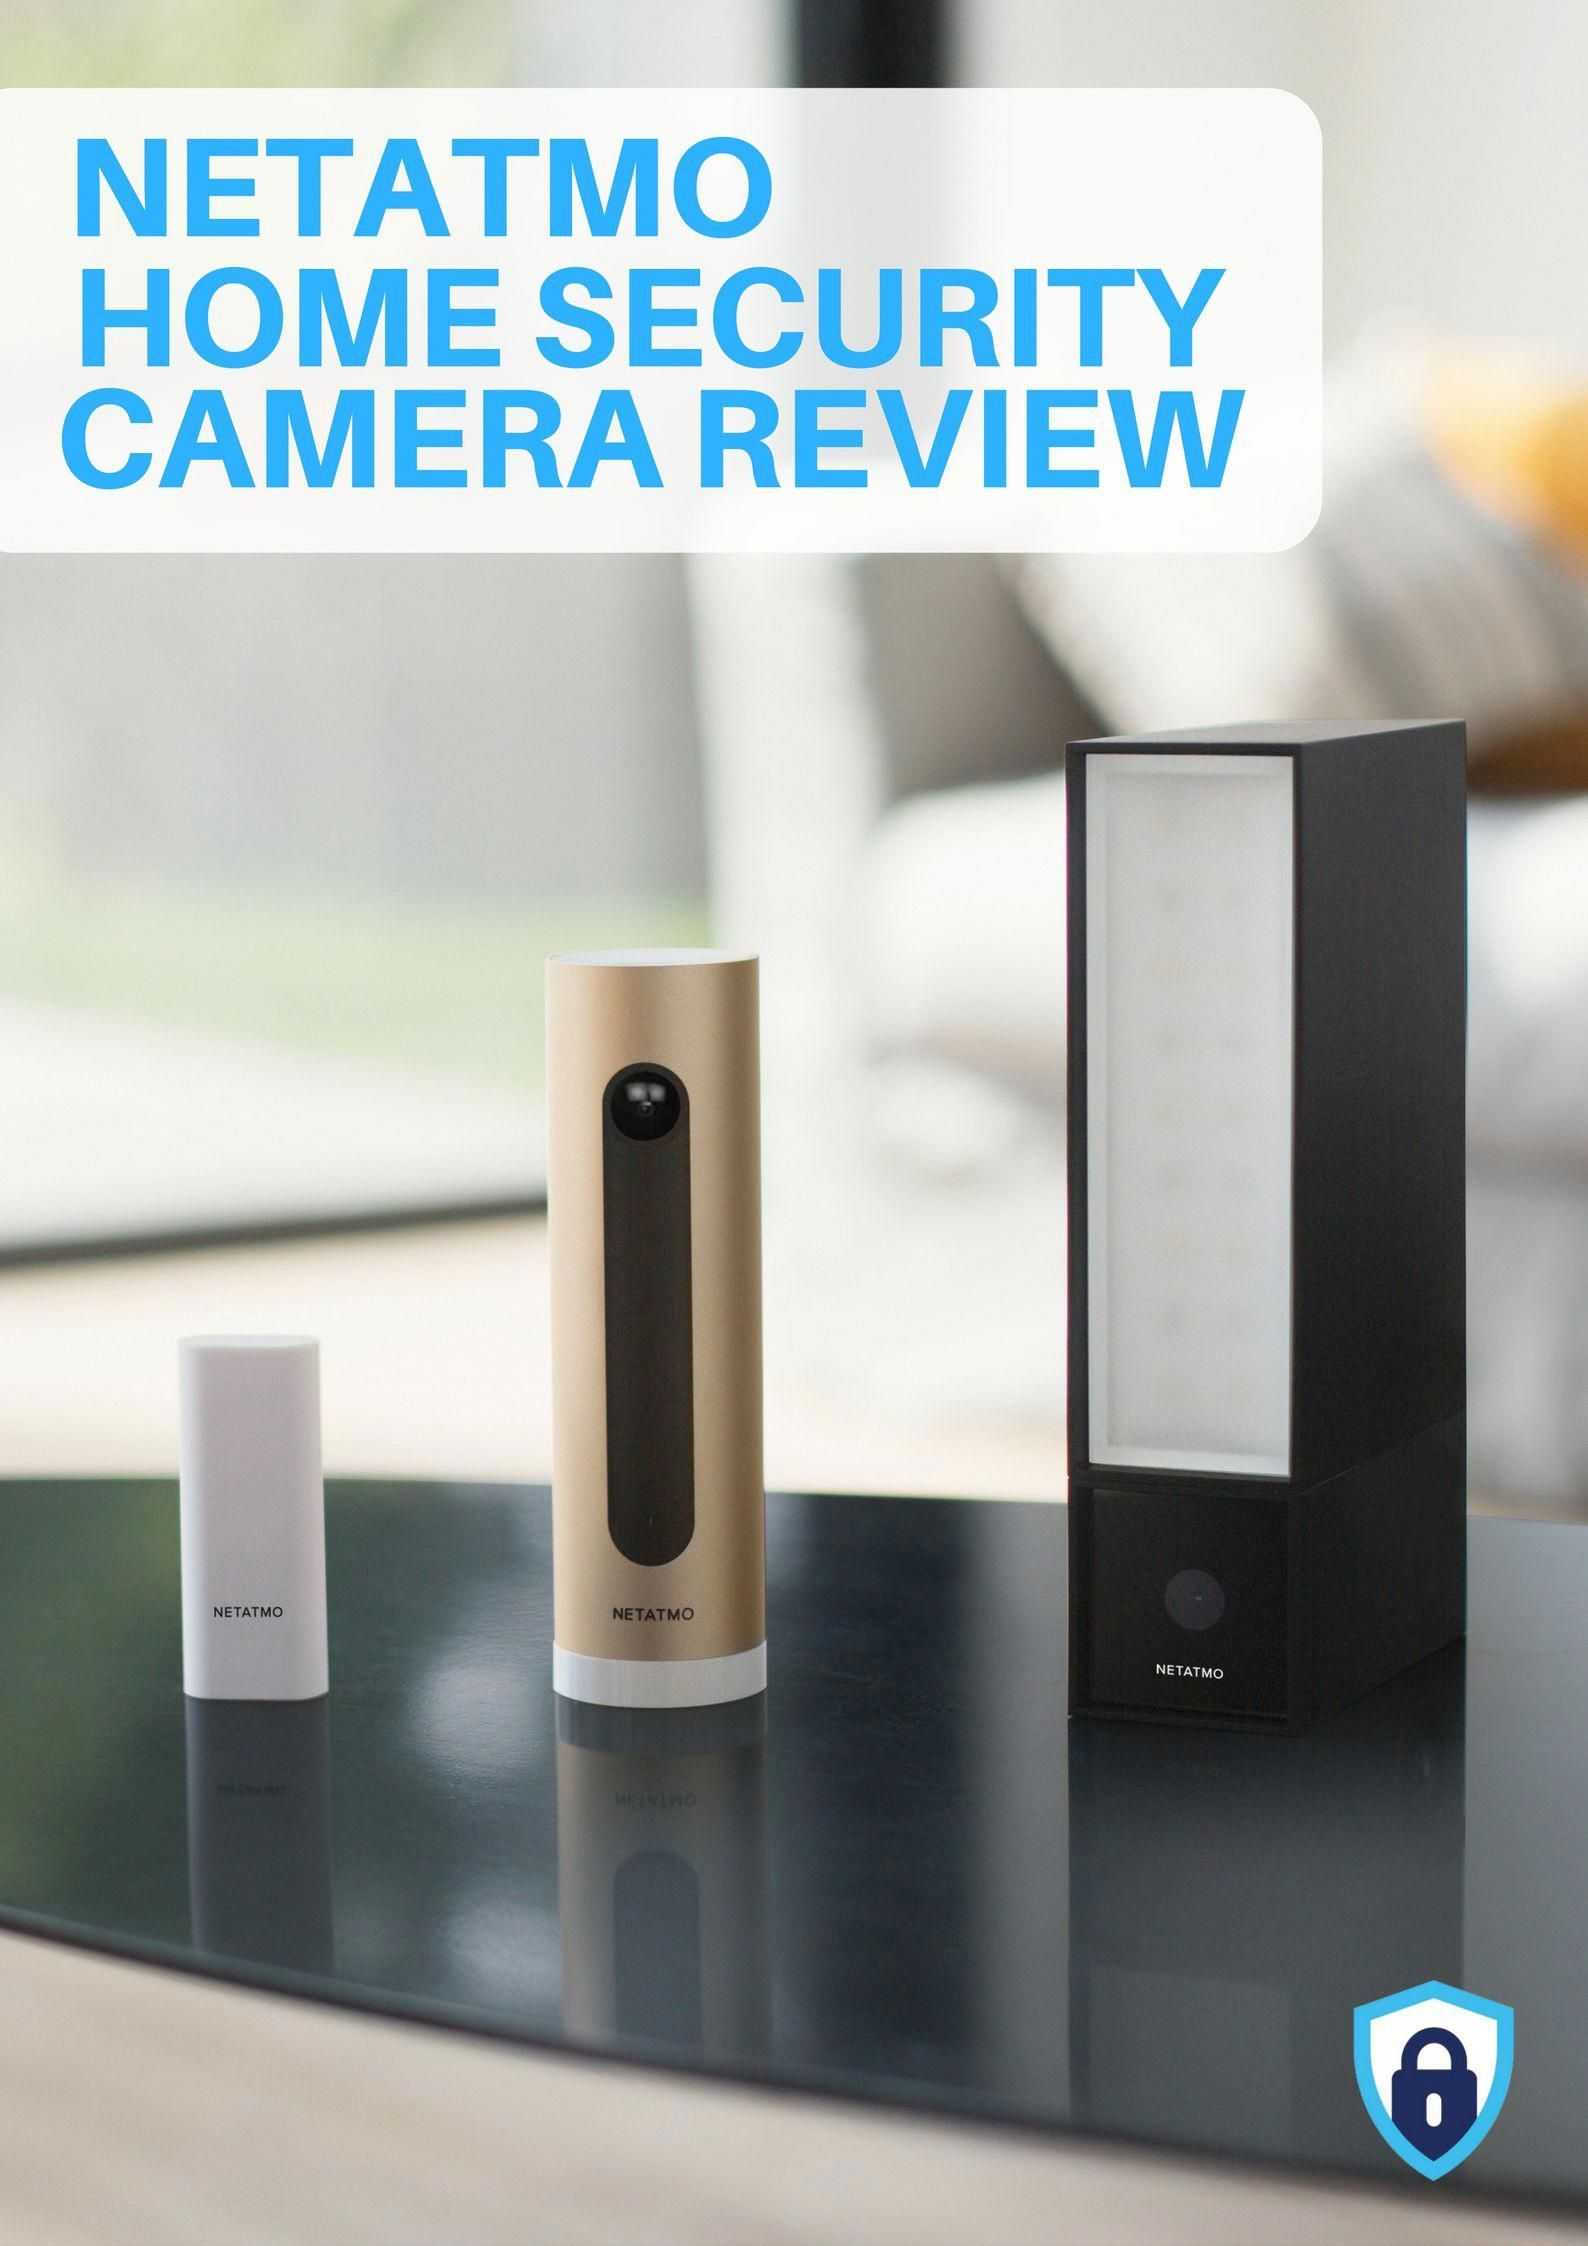 Find out if Netatmo Cameras have what it takes to protect your